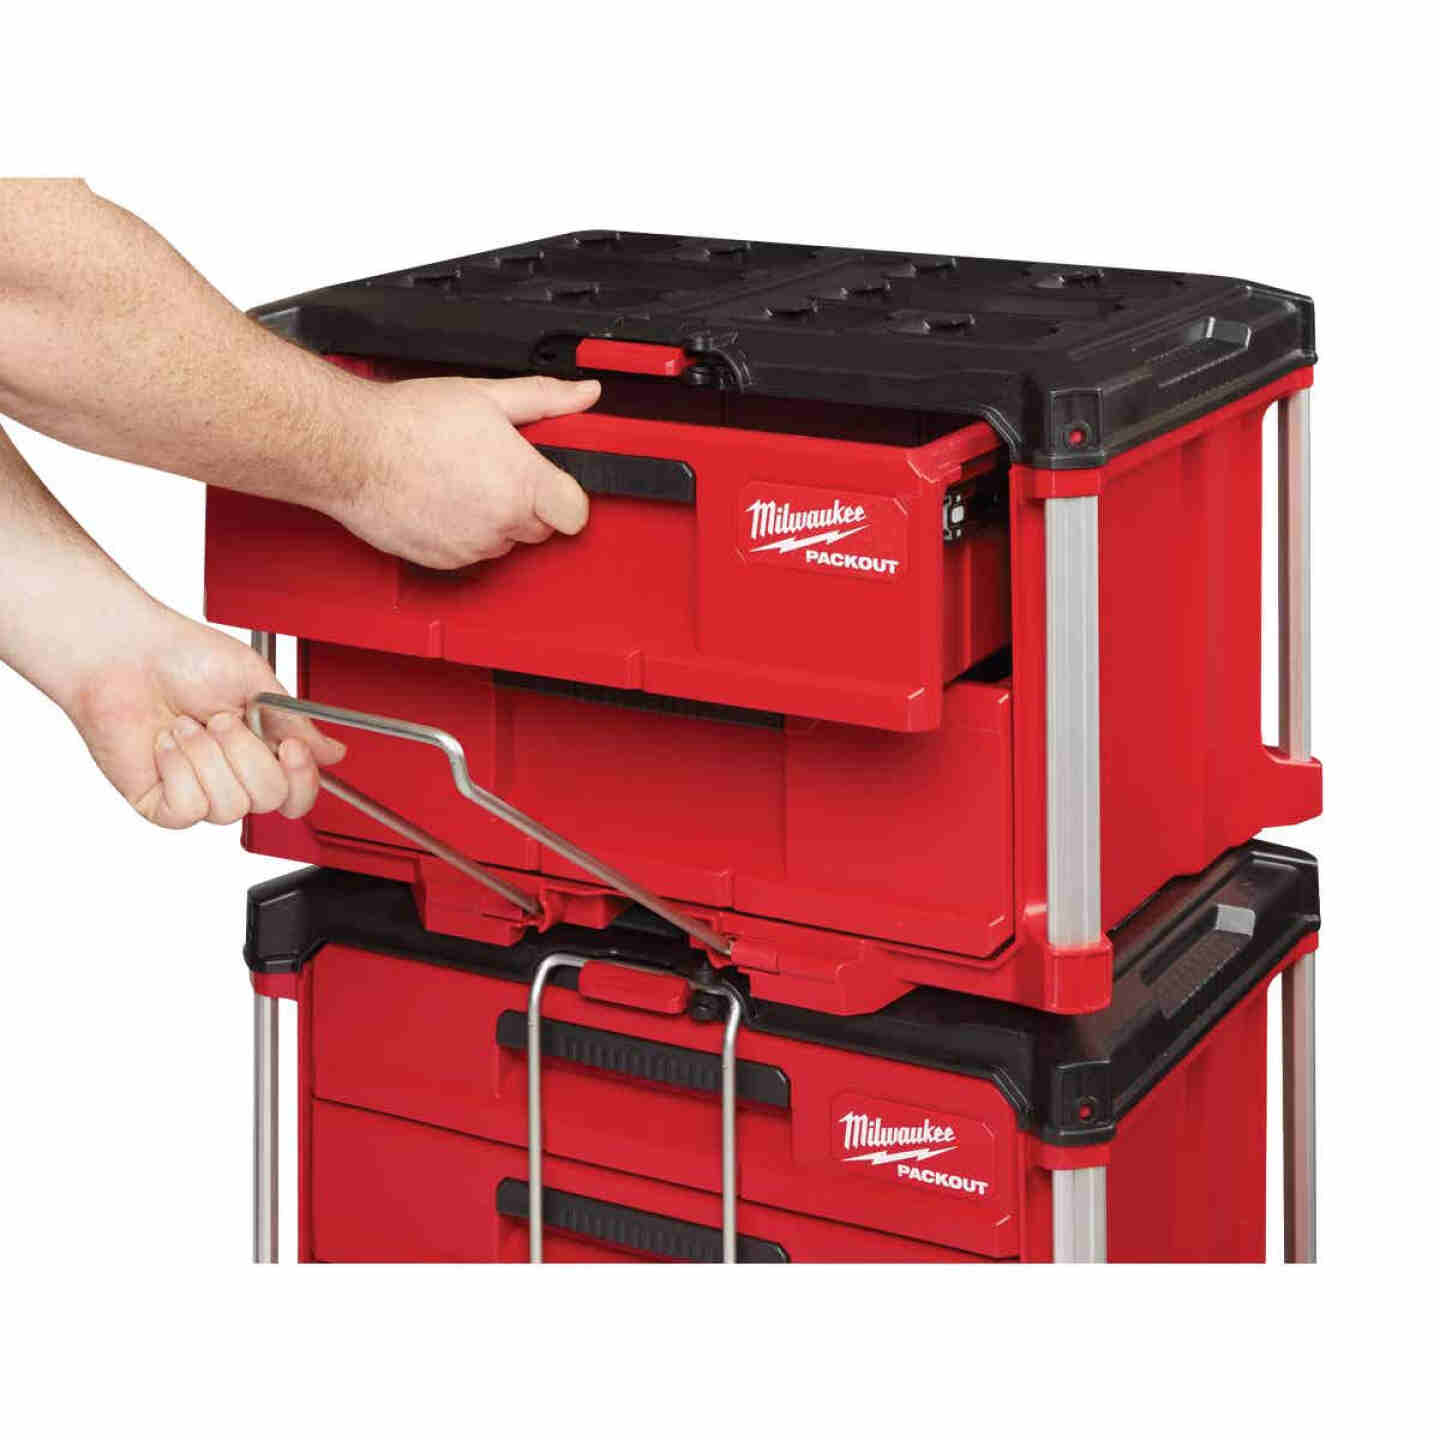 Milwaukee PACKOUT 2-Drawer Toolbox, 50 Lb. Capacity Image 2